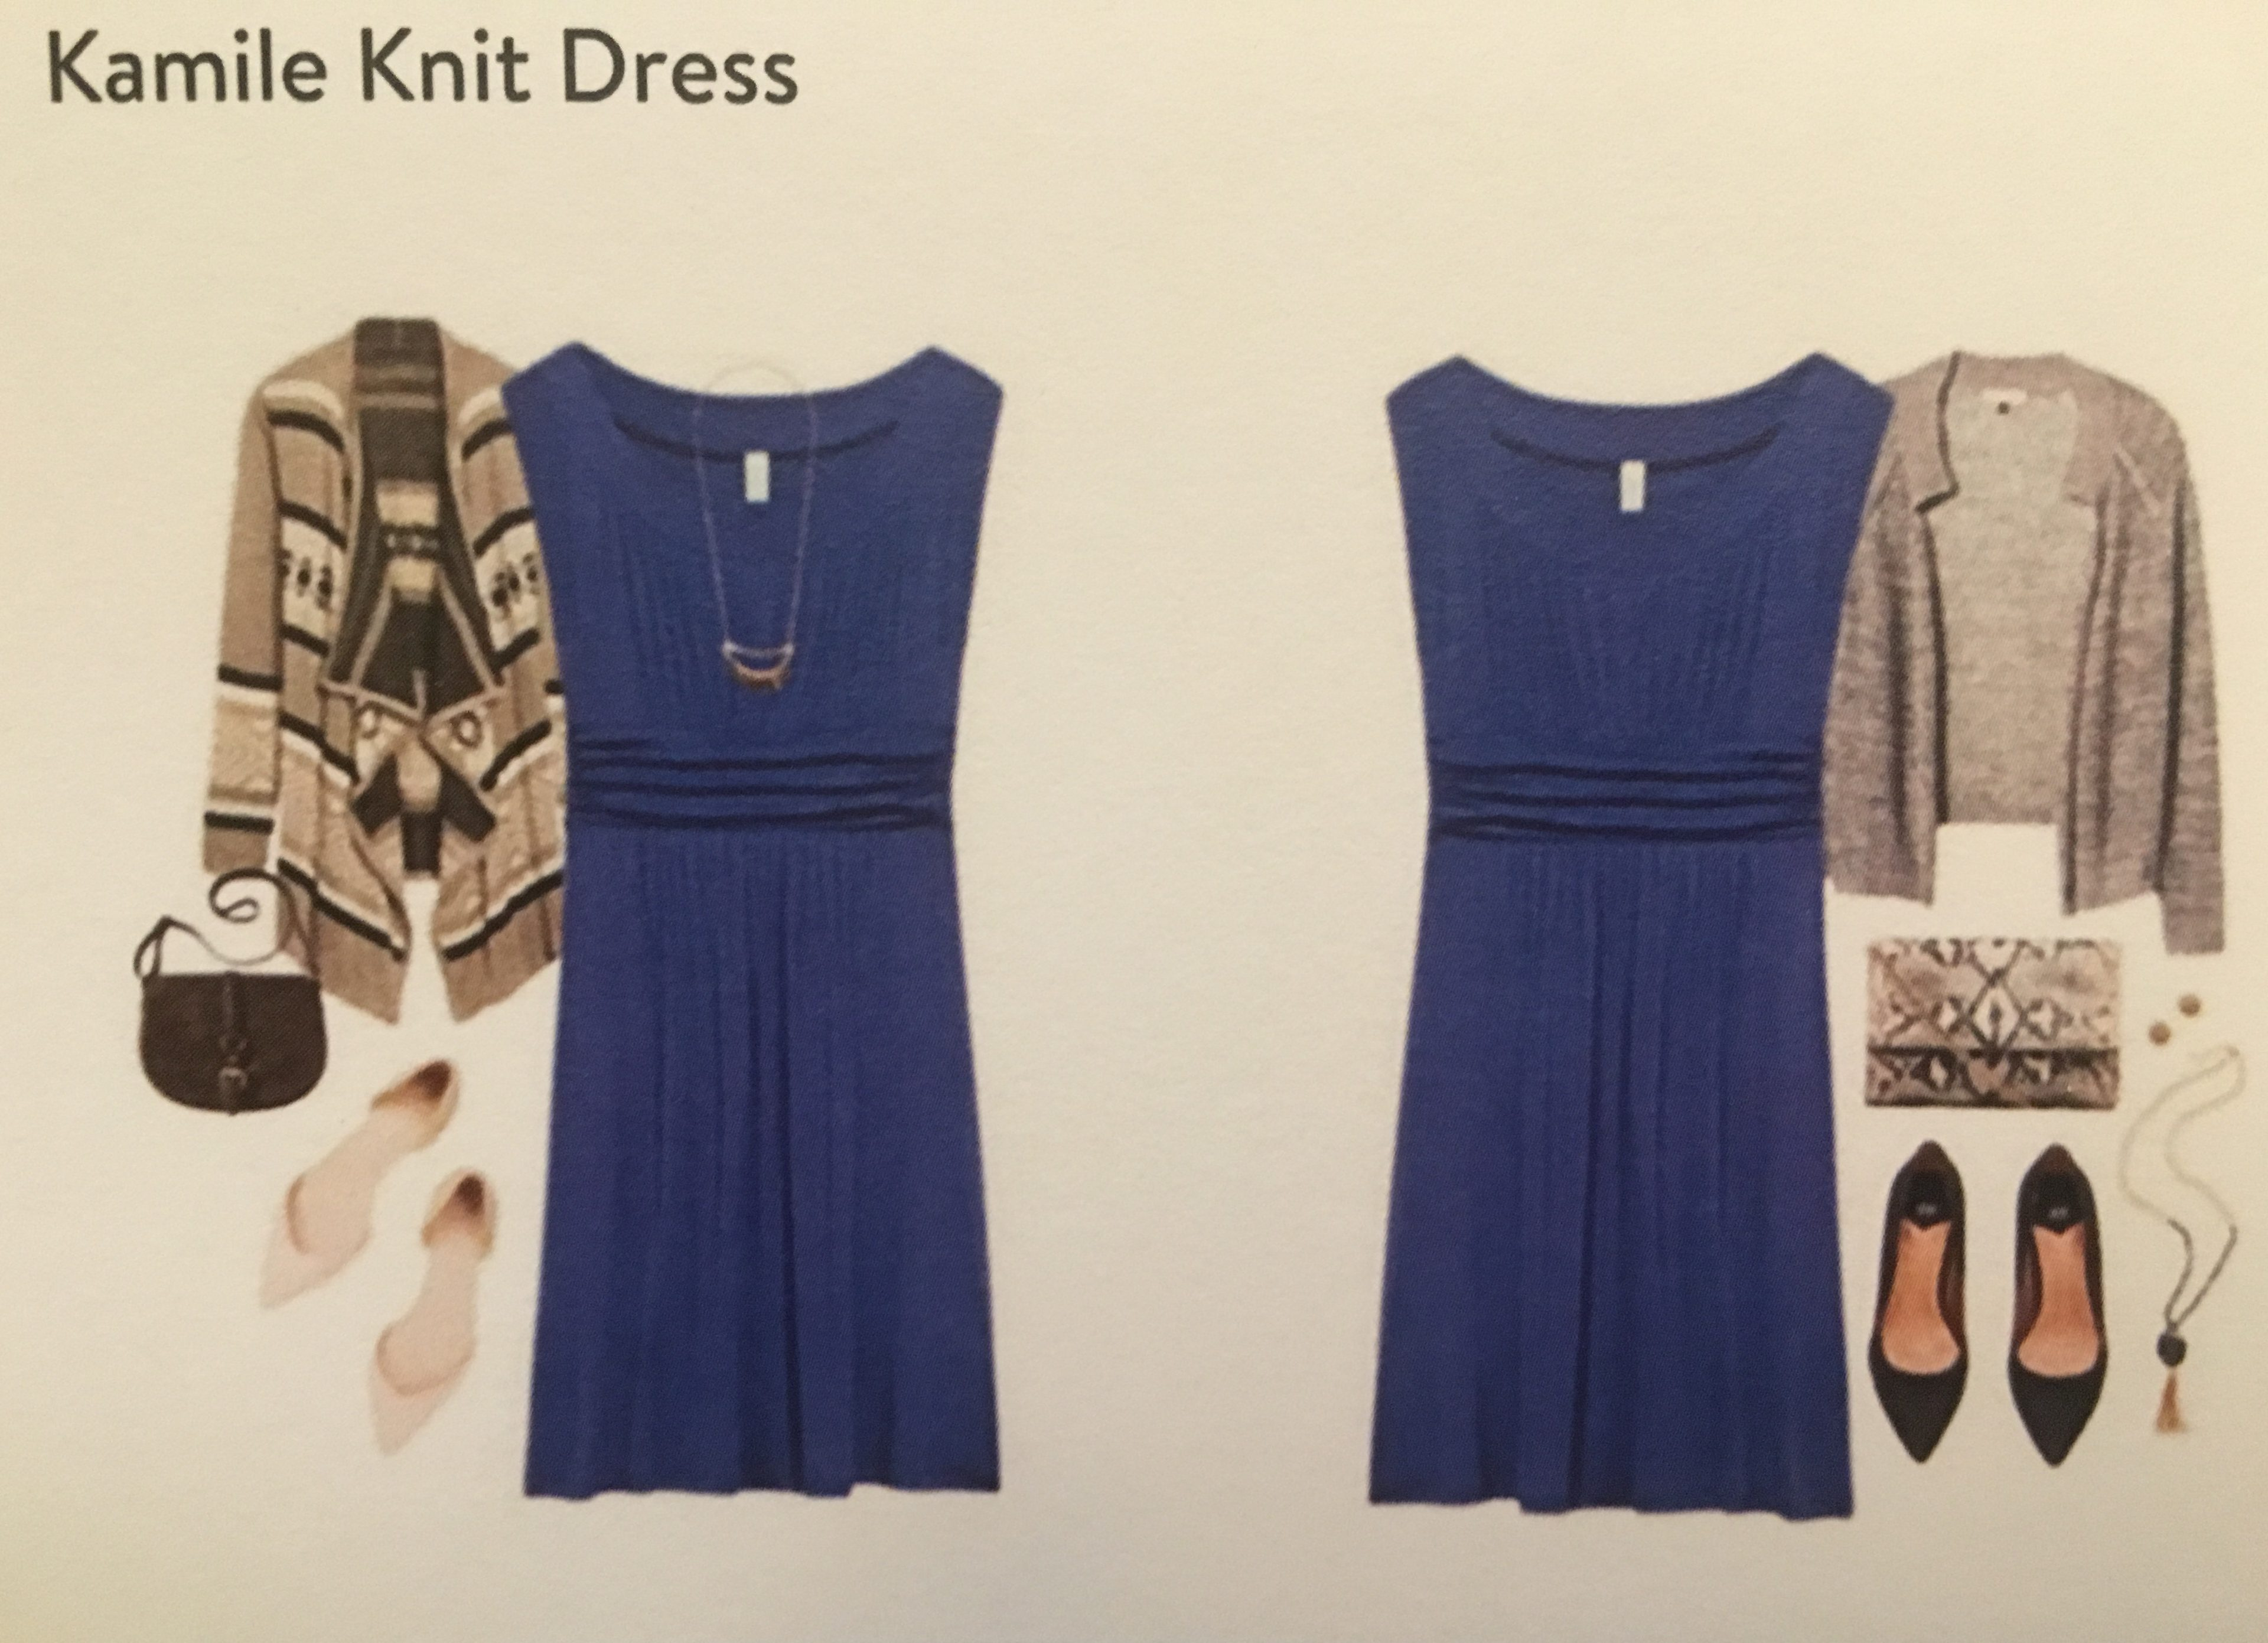 Gilli Kamile Knit Dress Suggestions